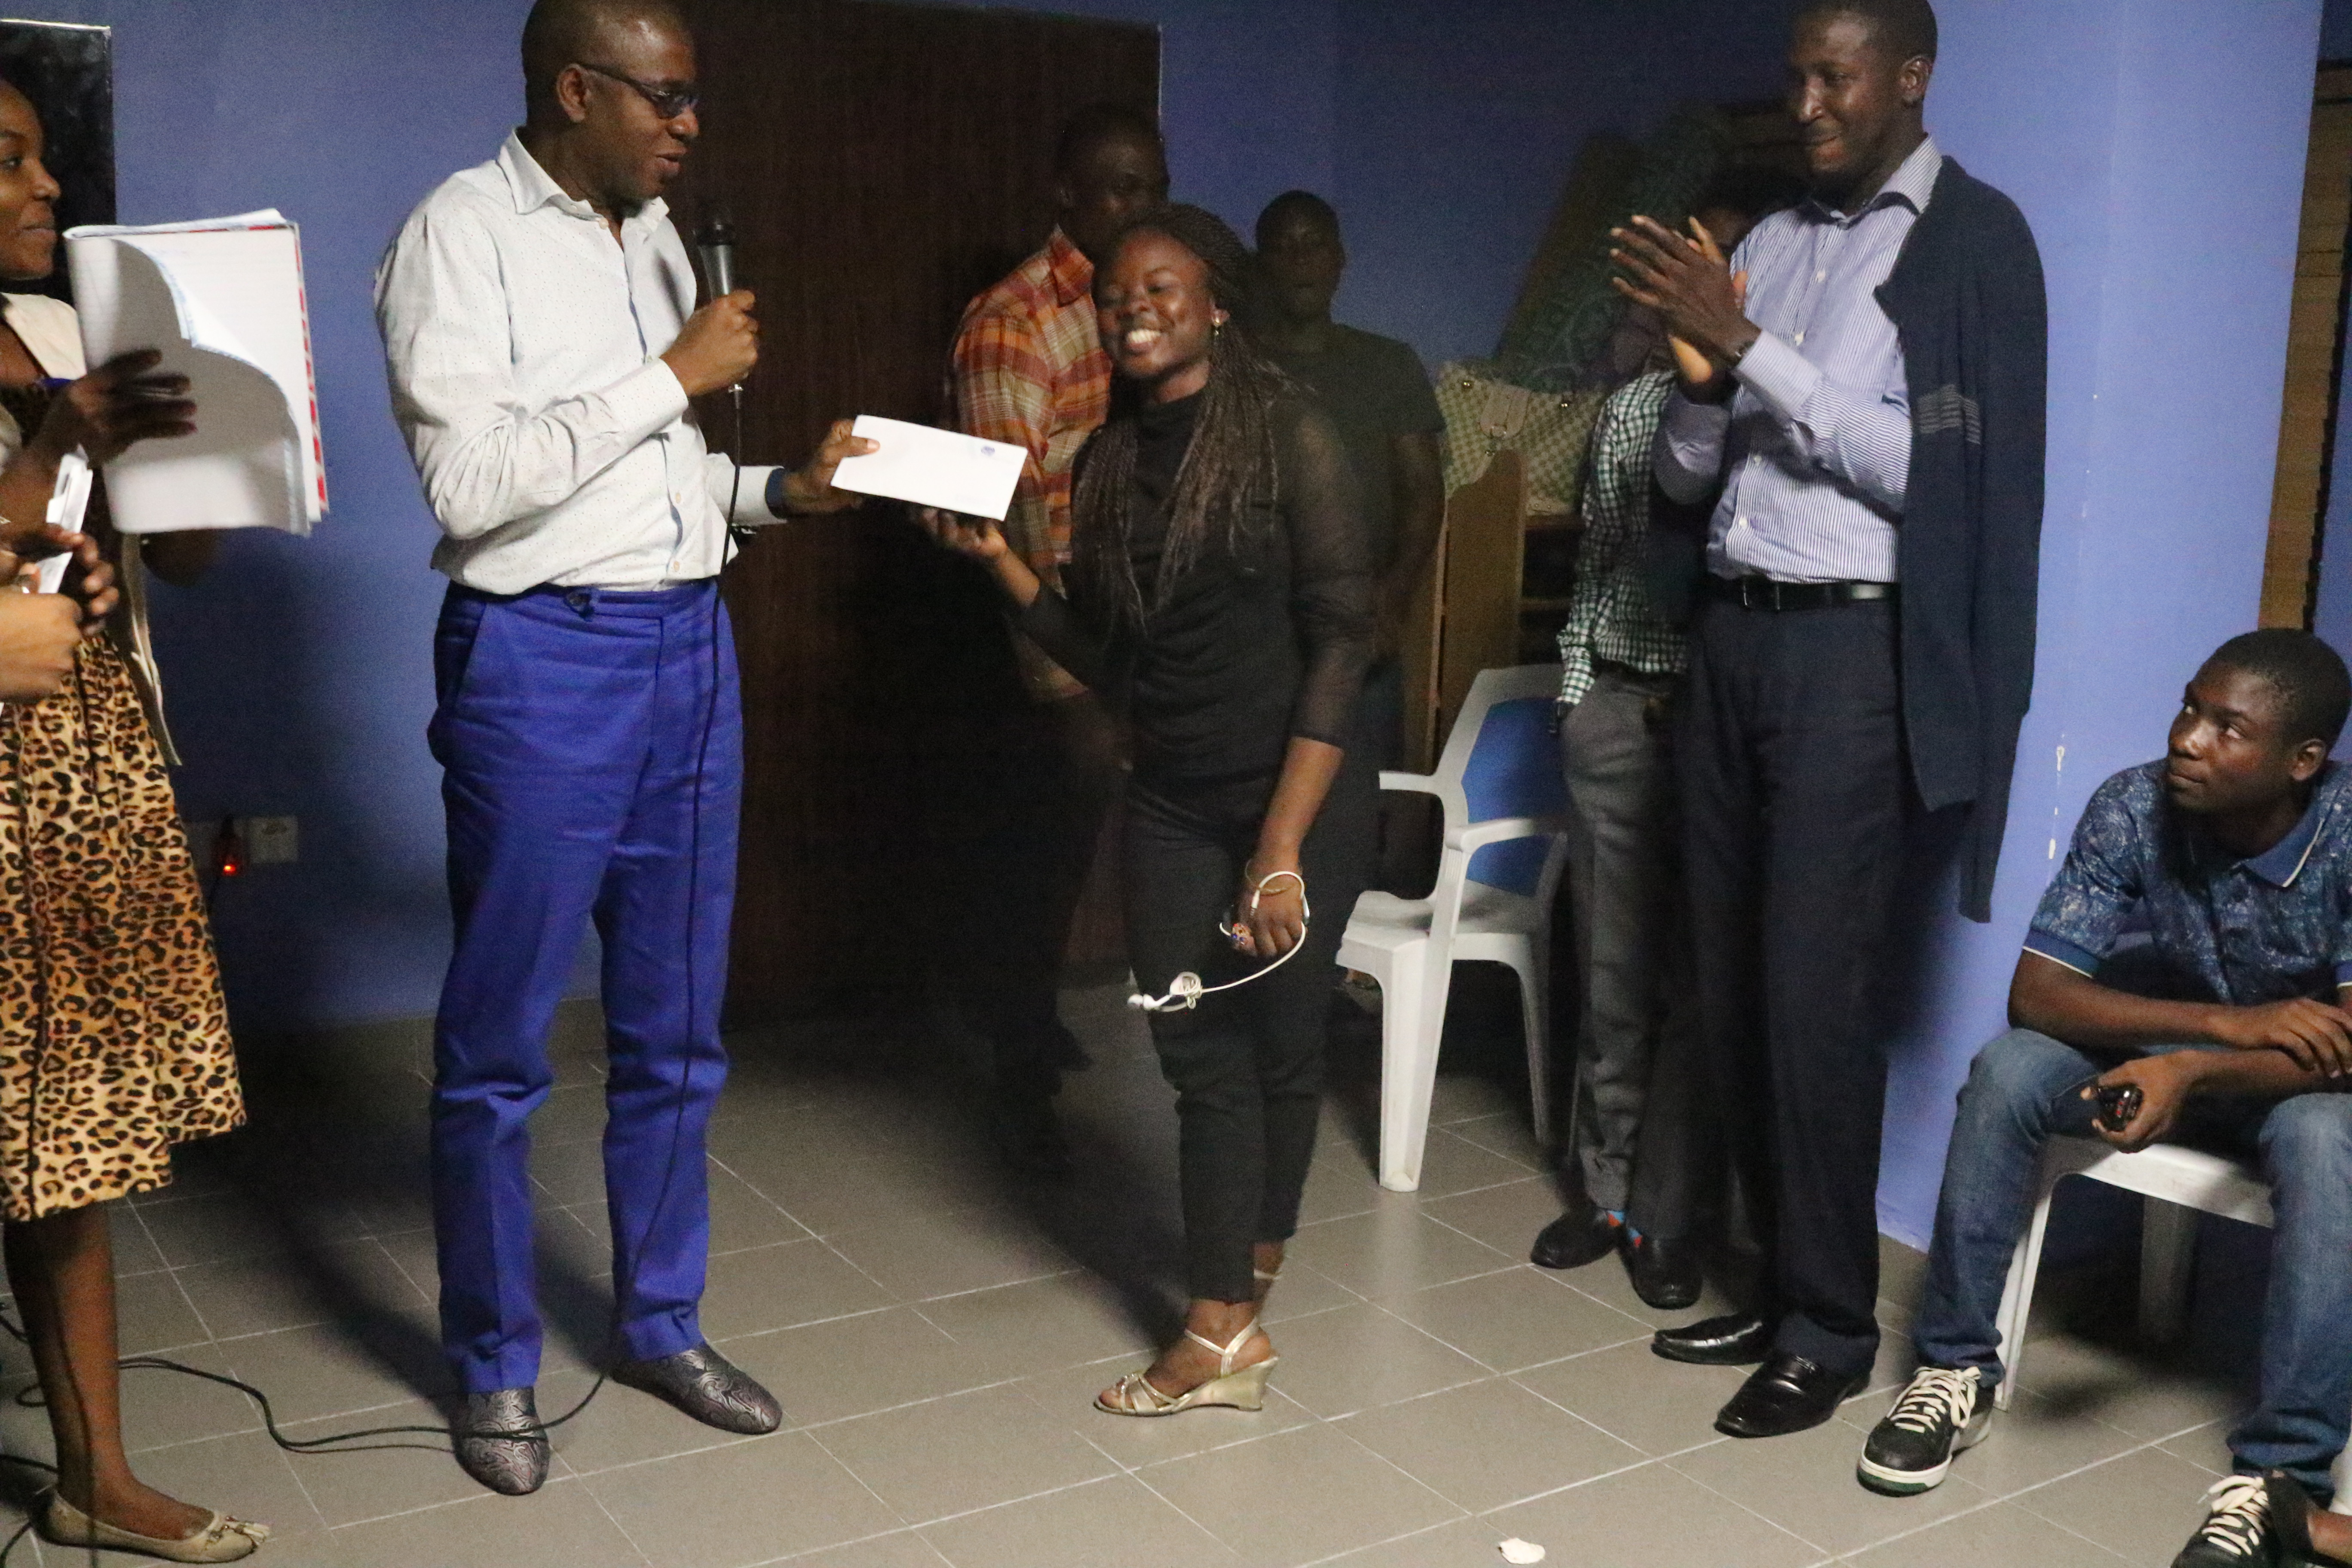 Nifemi Kolawole, Winner of the first prize during the second edition held in October. Bob Marley's Redemption Song won her the coveted highly position